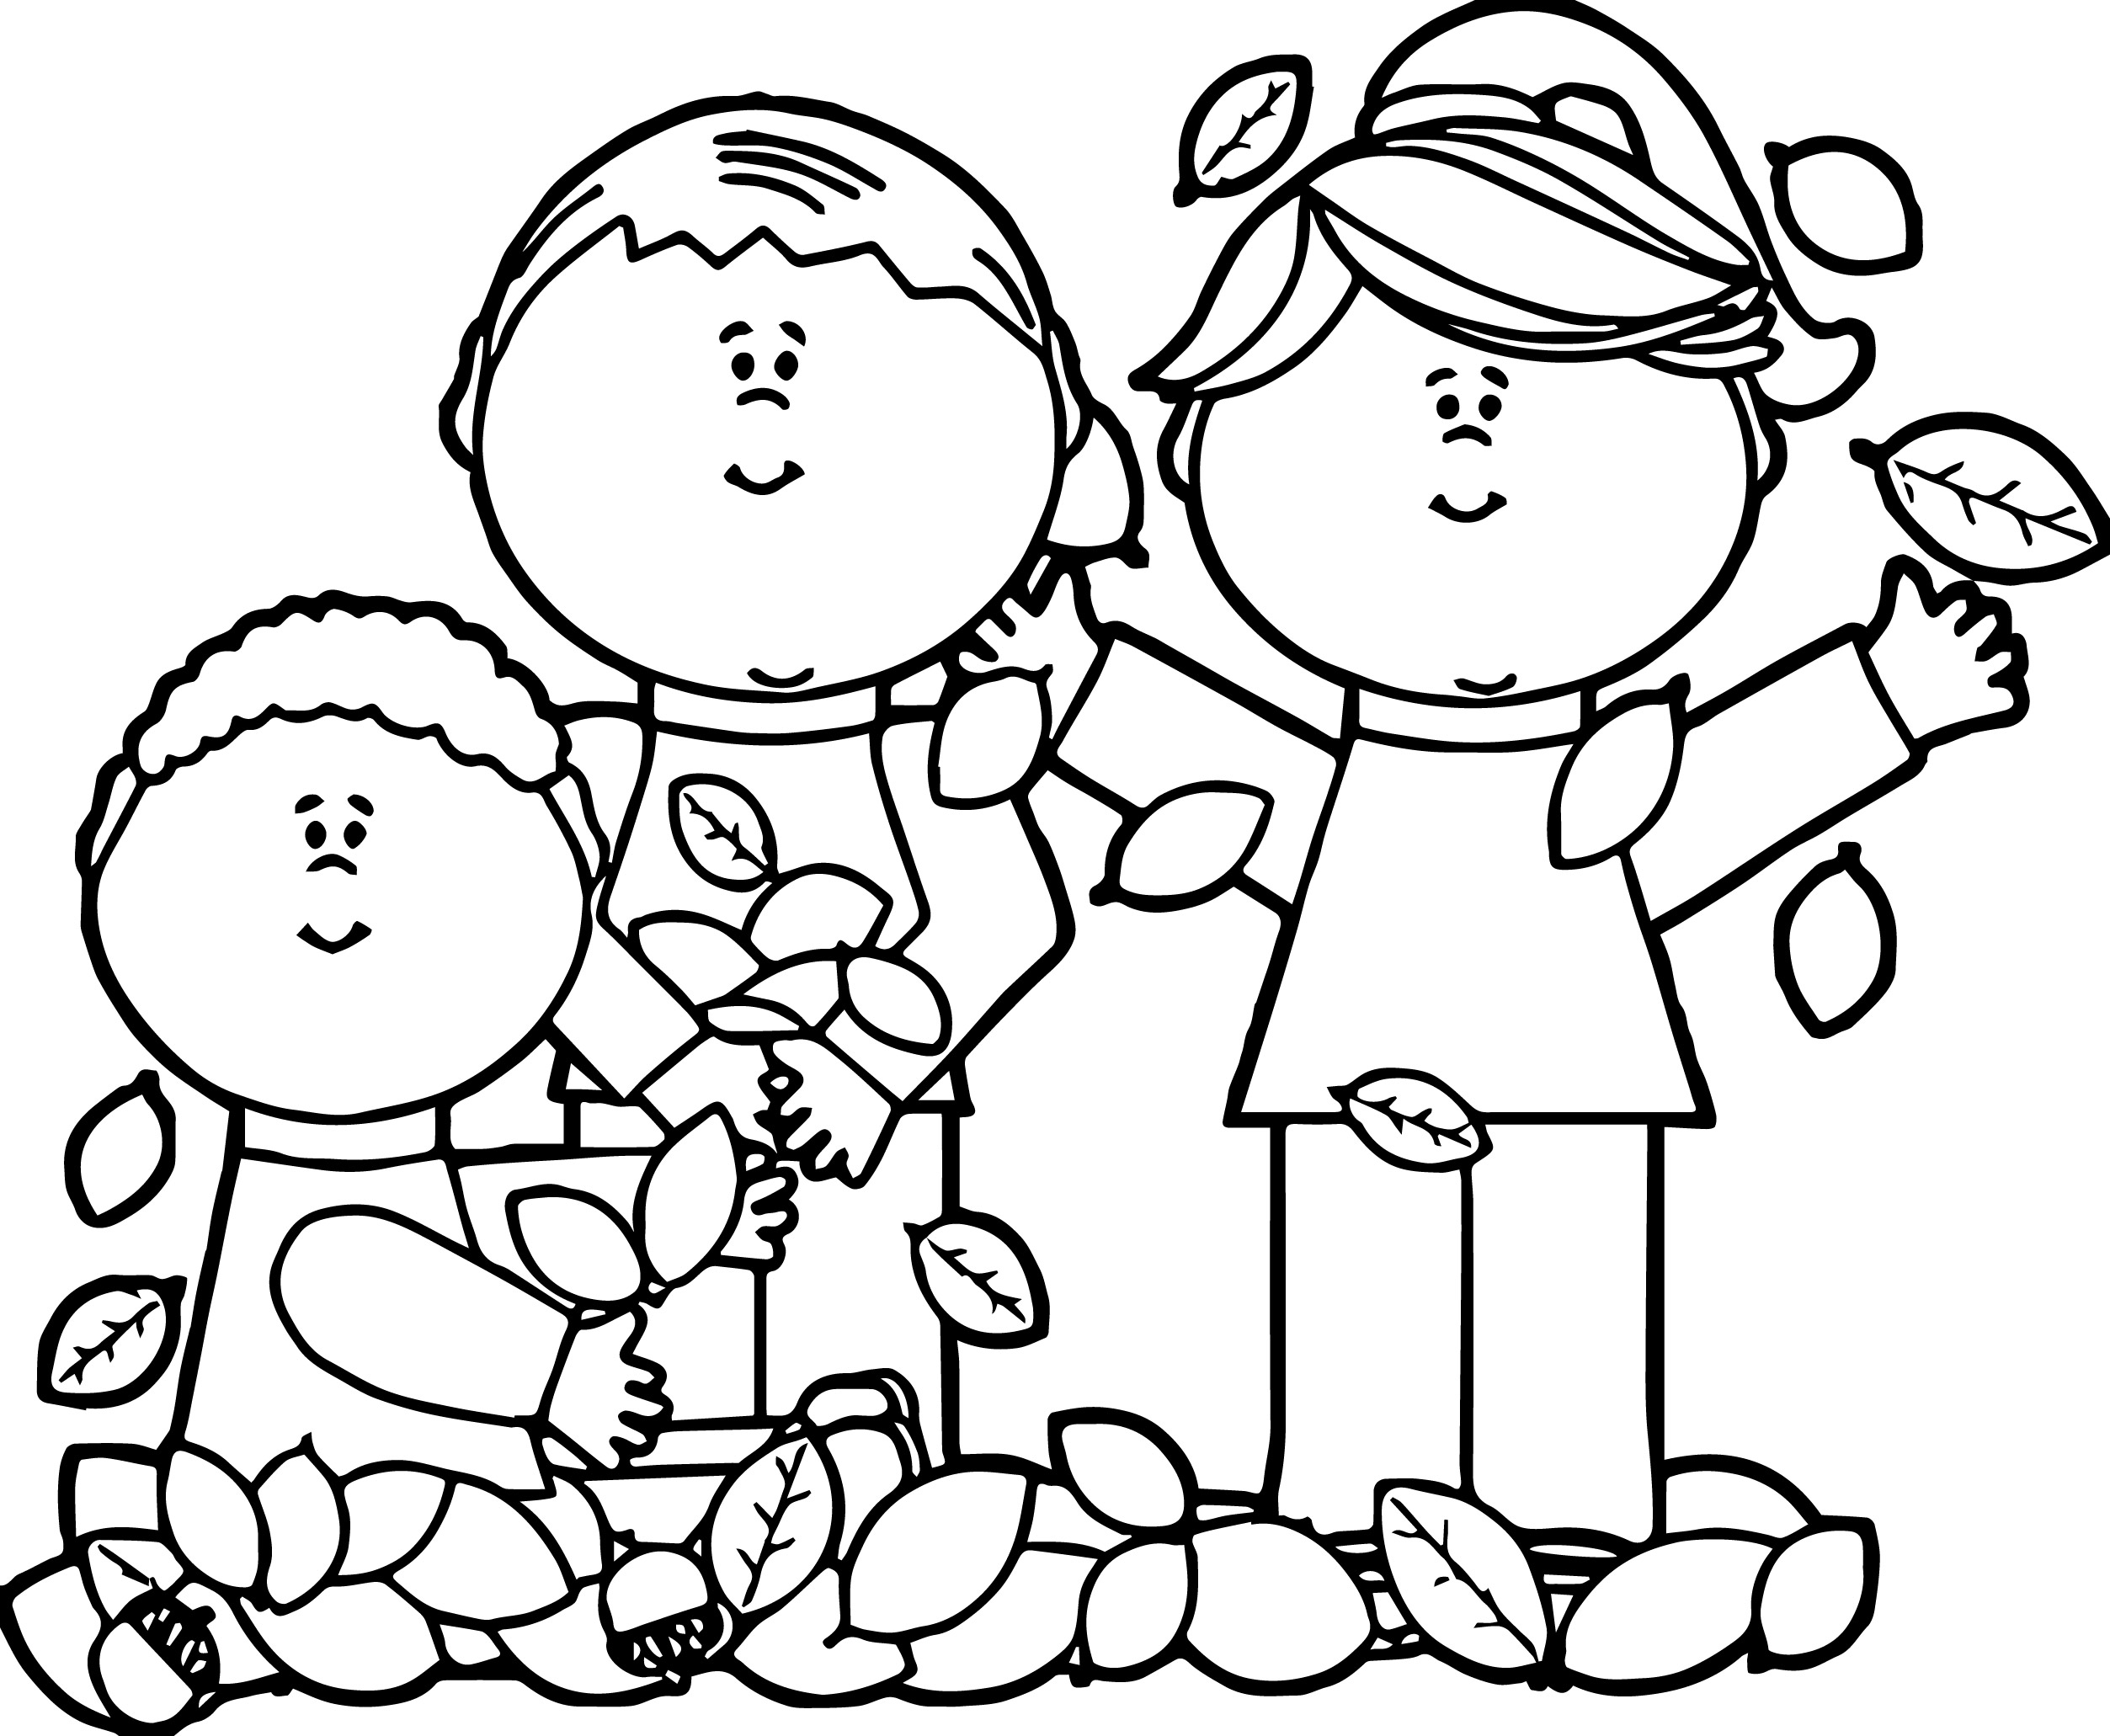 Kids Playing In Leaves Coloring Page Wecoloringpage Coloring Page For Kid